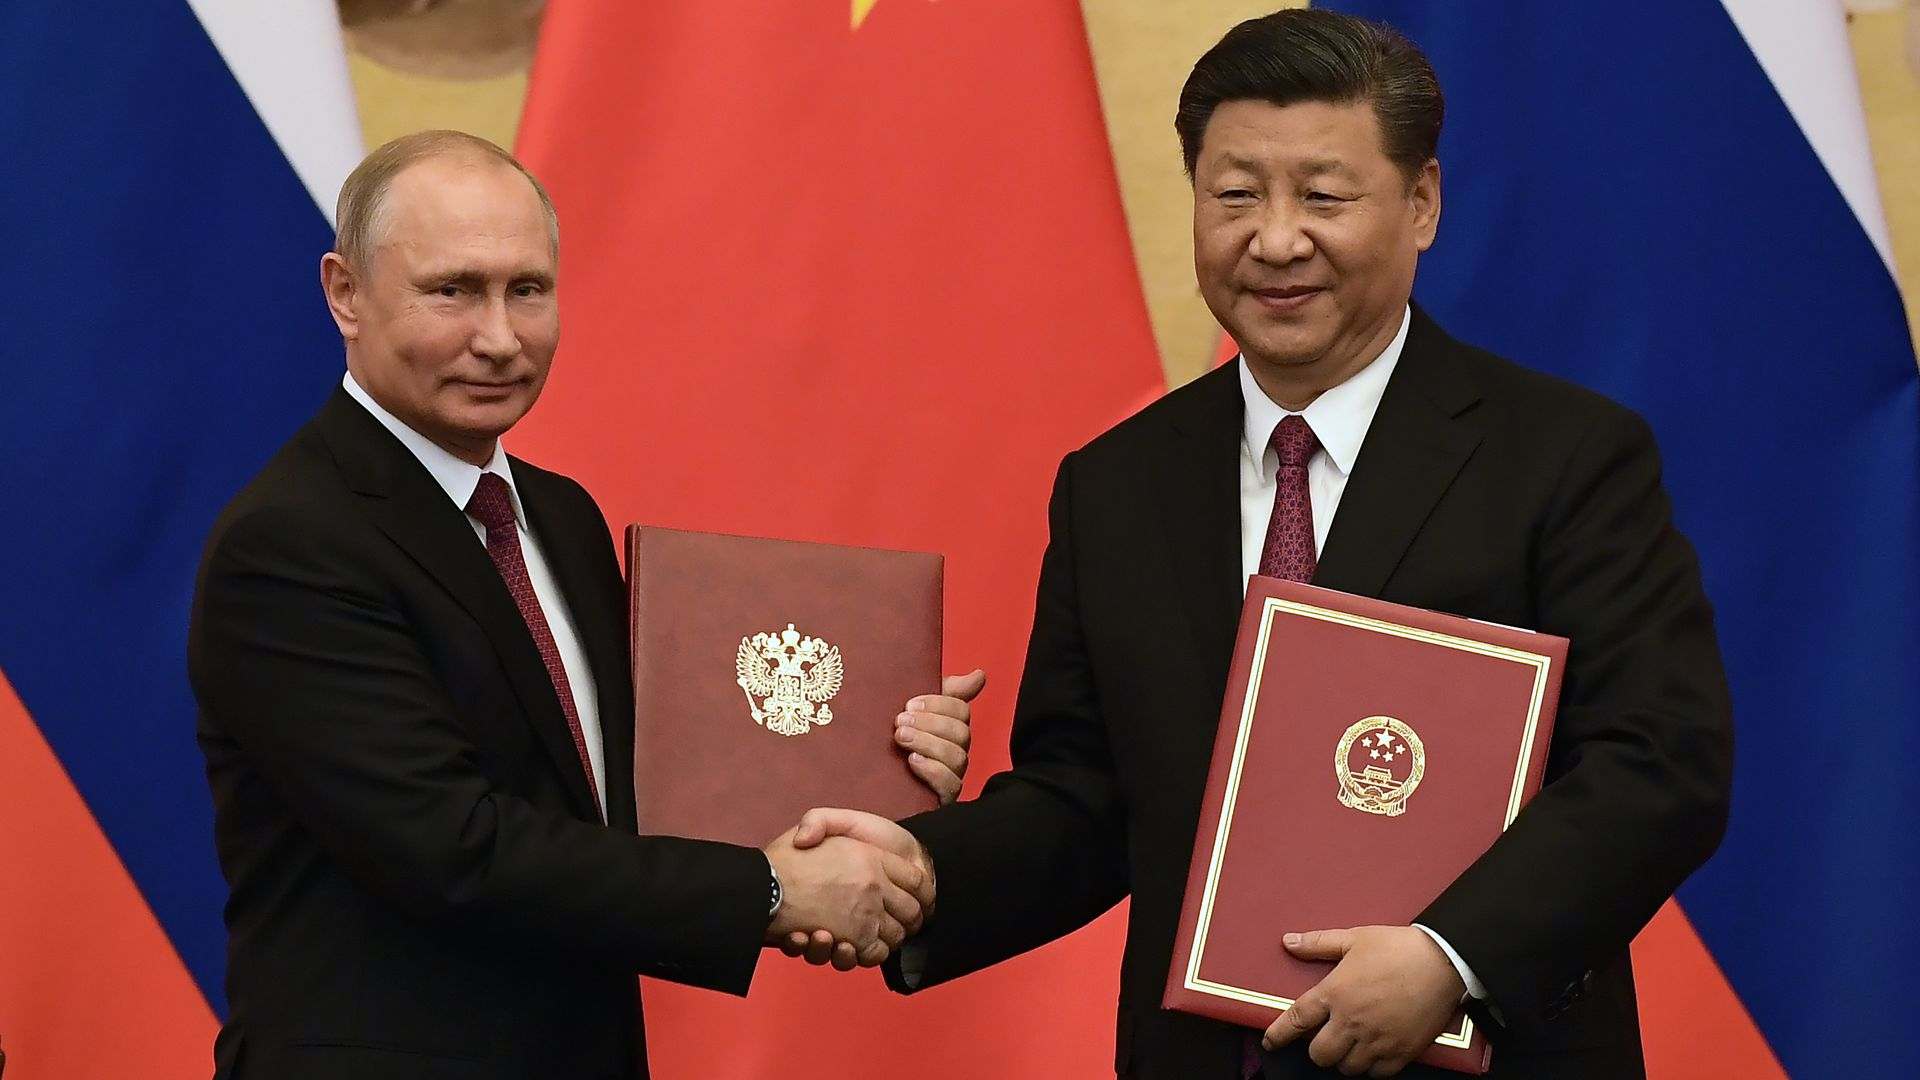 Russian President Putin shaking Chinese President Xi and getting friendship award